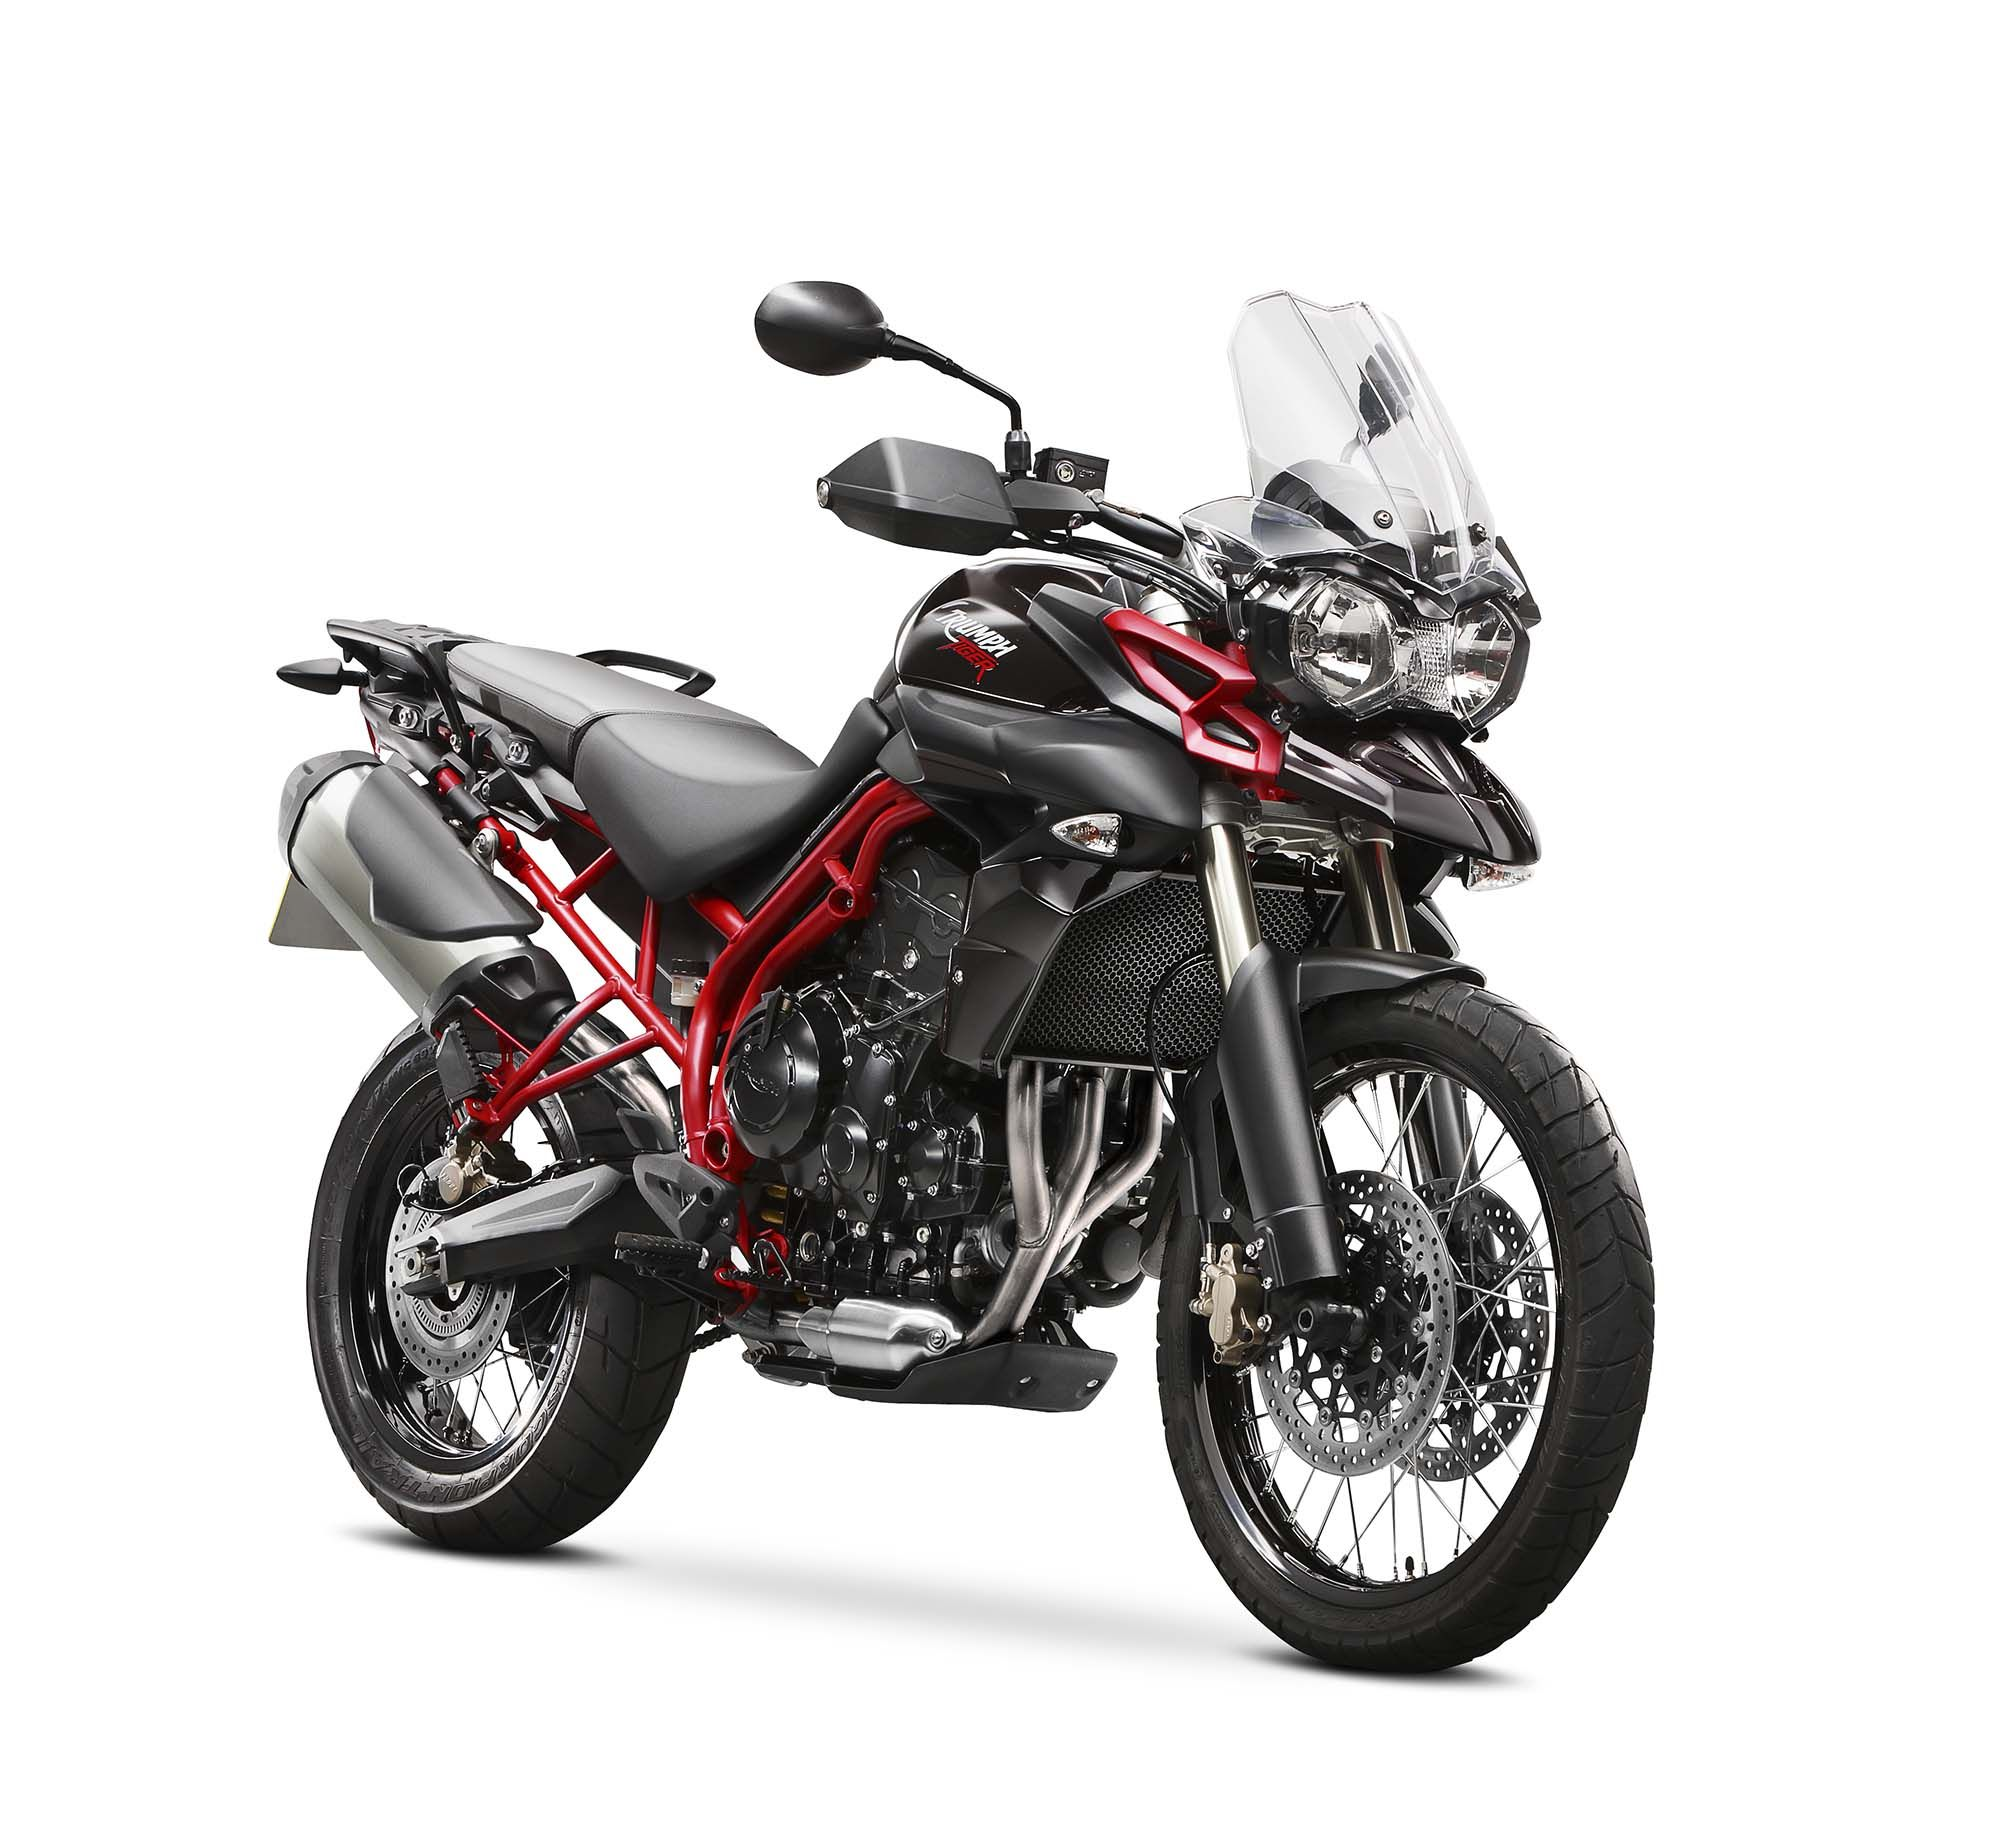 2014 triumph tiger 800 xc se that 39 s hot bikes i love. Black Bedroom Furniture Sets. Home Design Ideas